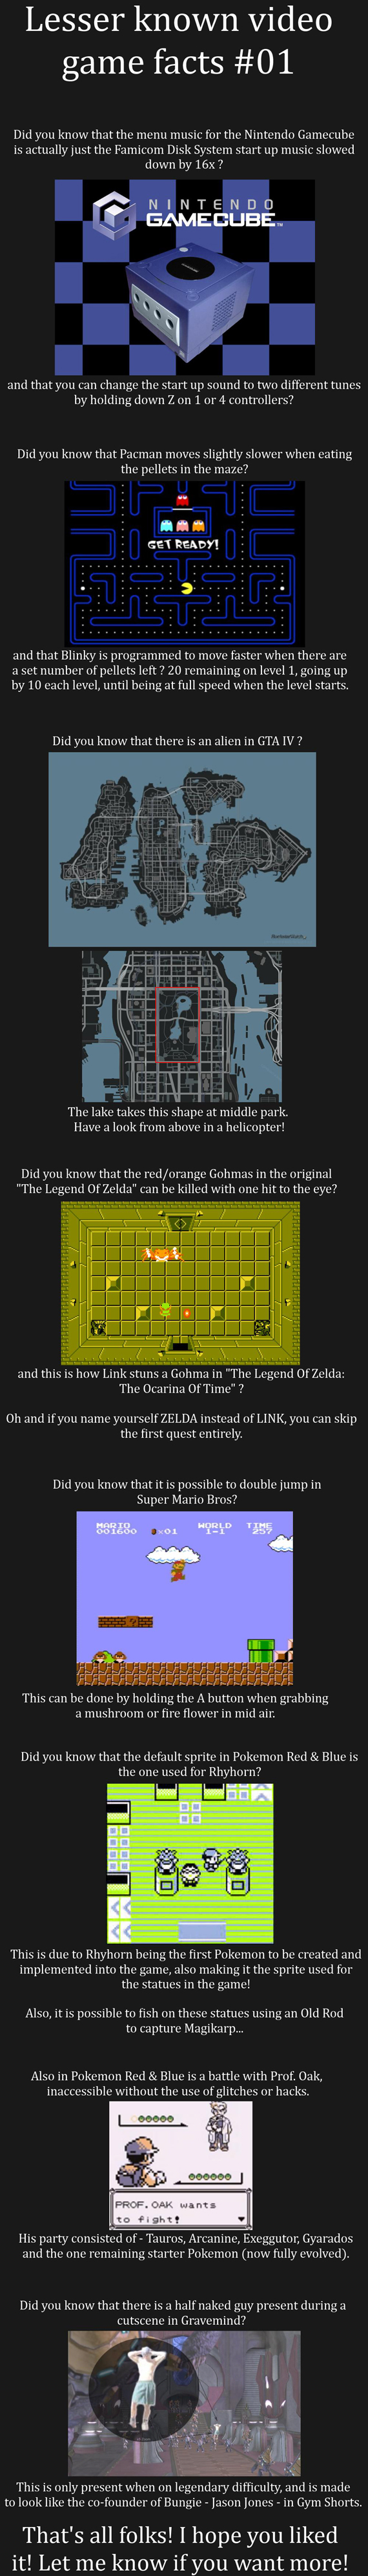 Handful of Obscure Video Game Facts To Test Your Knowledge